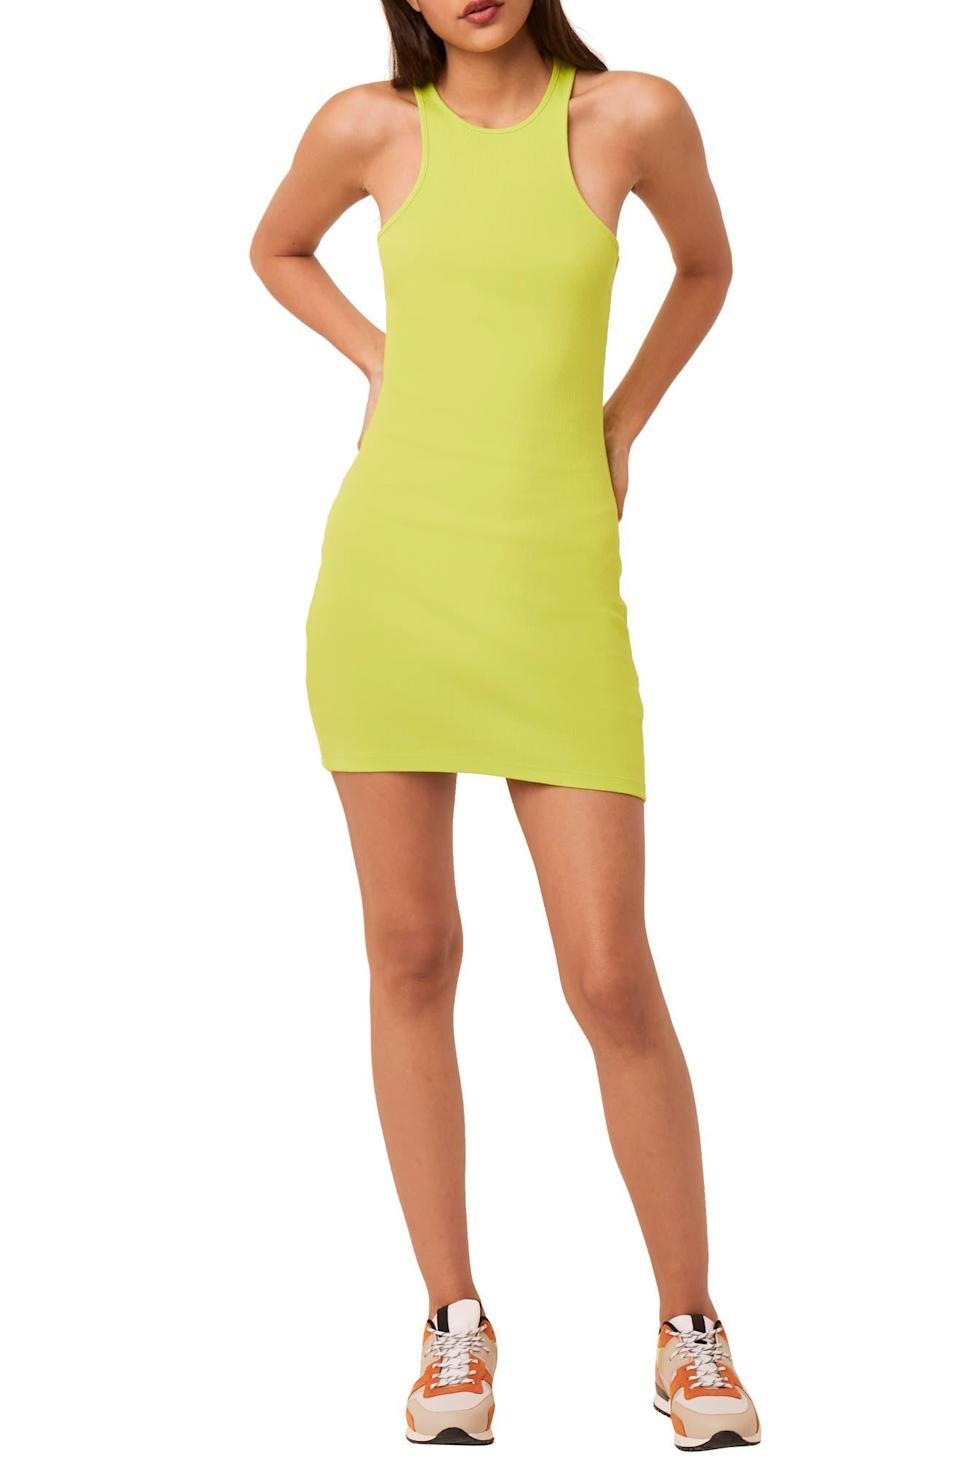 """<h2>French Connection Masha Rib Midi Dress</h2><br>Glow like a lightning bug this hot girl summer with the help of an un-missable lime green hue.<br><br><em>Shop <strong><a href=""""https://www.nordstrom.com/brands/french-connection--260"""" rel=""""nofollow noopener"""" target=""""_blank"""" data-ylk=""""slk:French Connection"""" class=""""link rapid-noclick-resp"""">French Connection</a></strong></em><br><br><strong>French Connection</strong> Rasha Rib Minidress, $, available at <a href=""""https://go.skimresources.com/?id=30283X879131&url=https%3A%2F%2Fwww.nordstrom.com%2Fs%2Ffrench-connection-rasha-rib-minidress%2F5651643%3F%26color%3Dlime%2520punch"""" rel=""""nofollow noopener"""" target=""""_blank"""" data-ylk=""""slk:Nordstrom"""" class=""""link rapid-noclick-resp"""">Nordstrom</a>"""